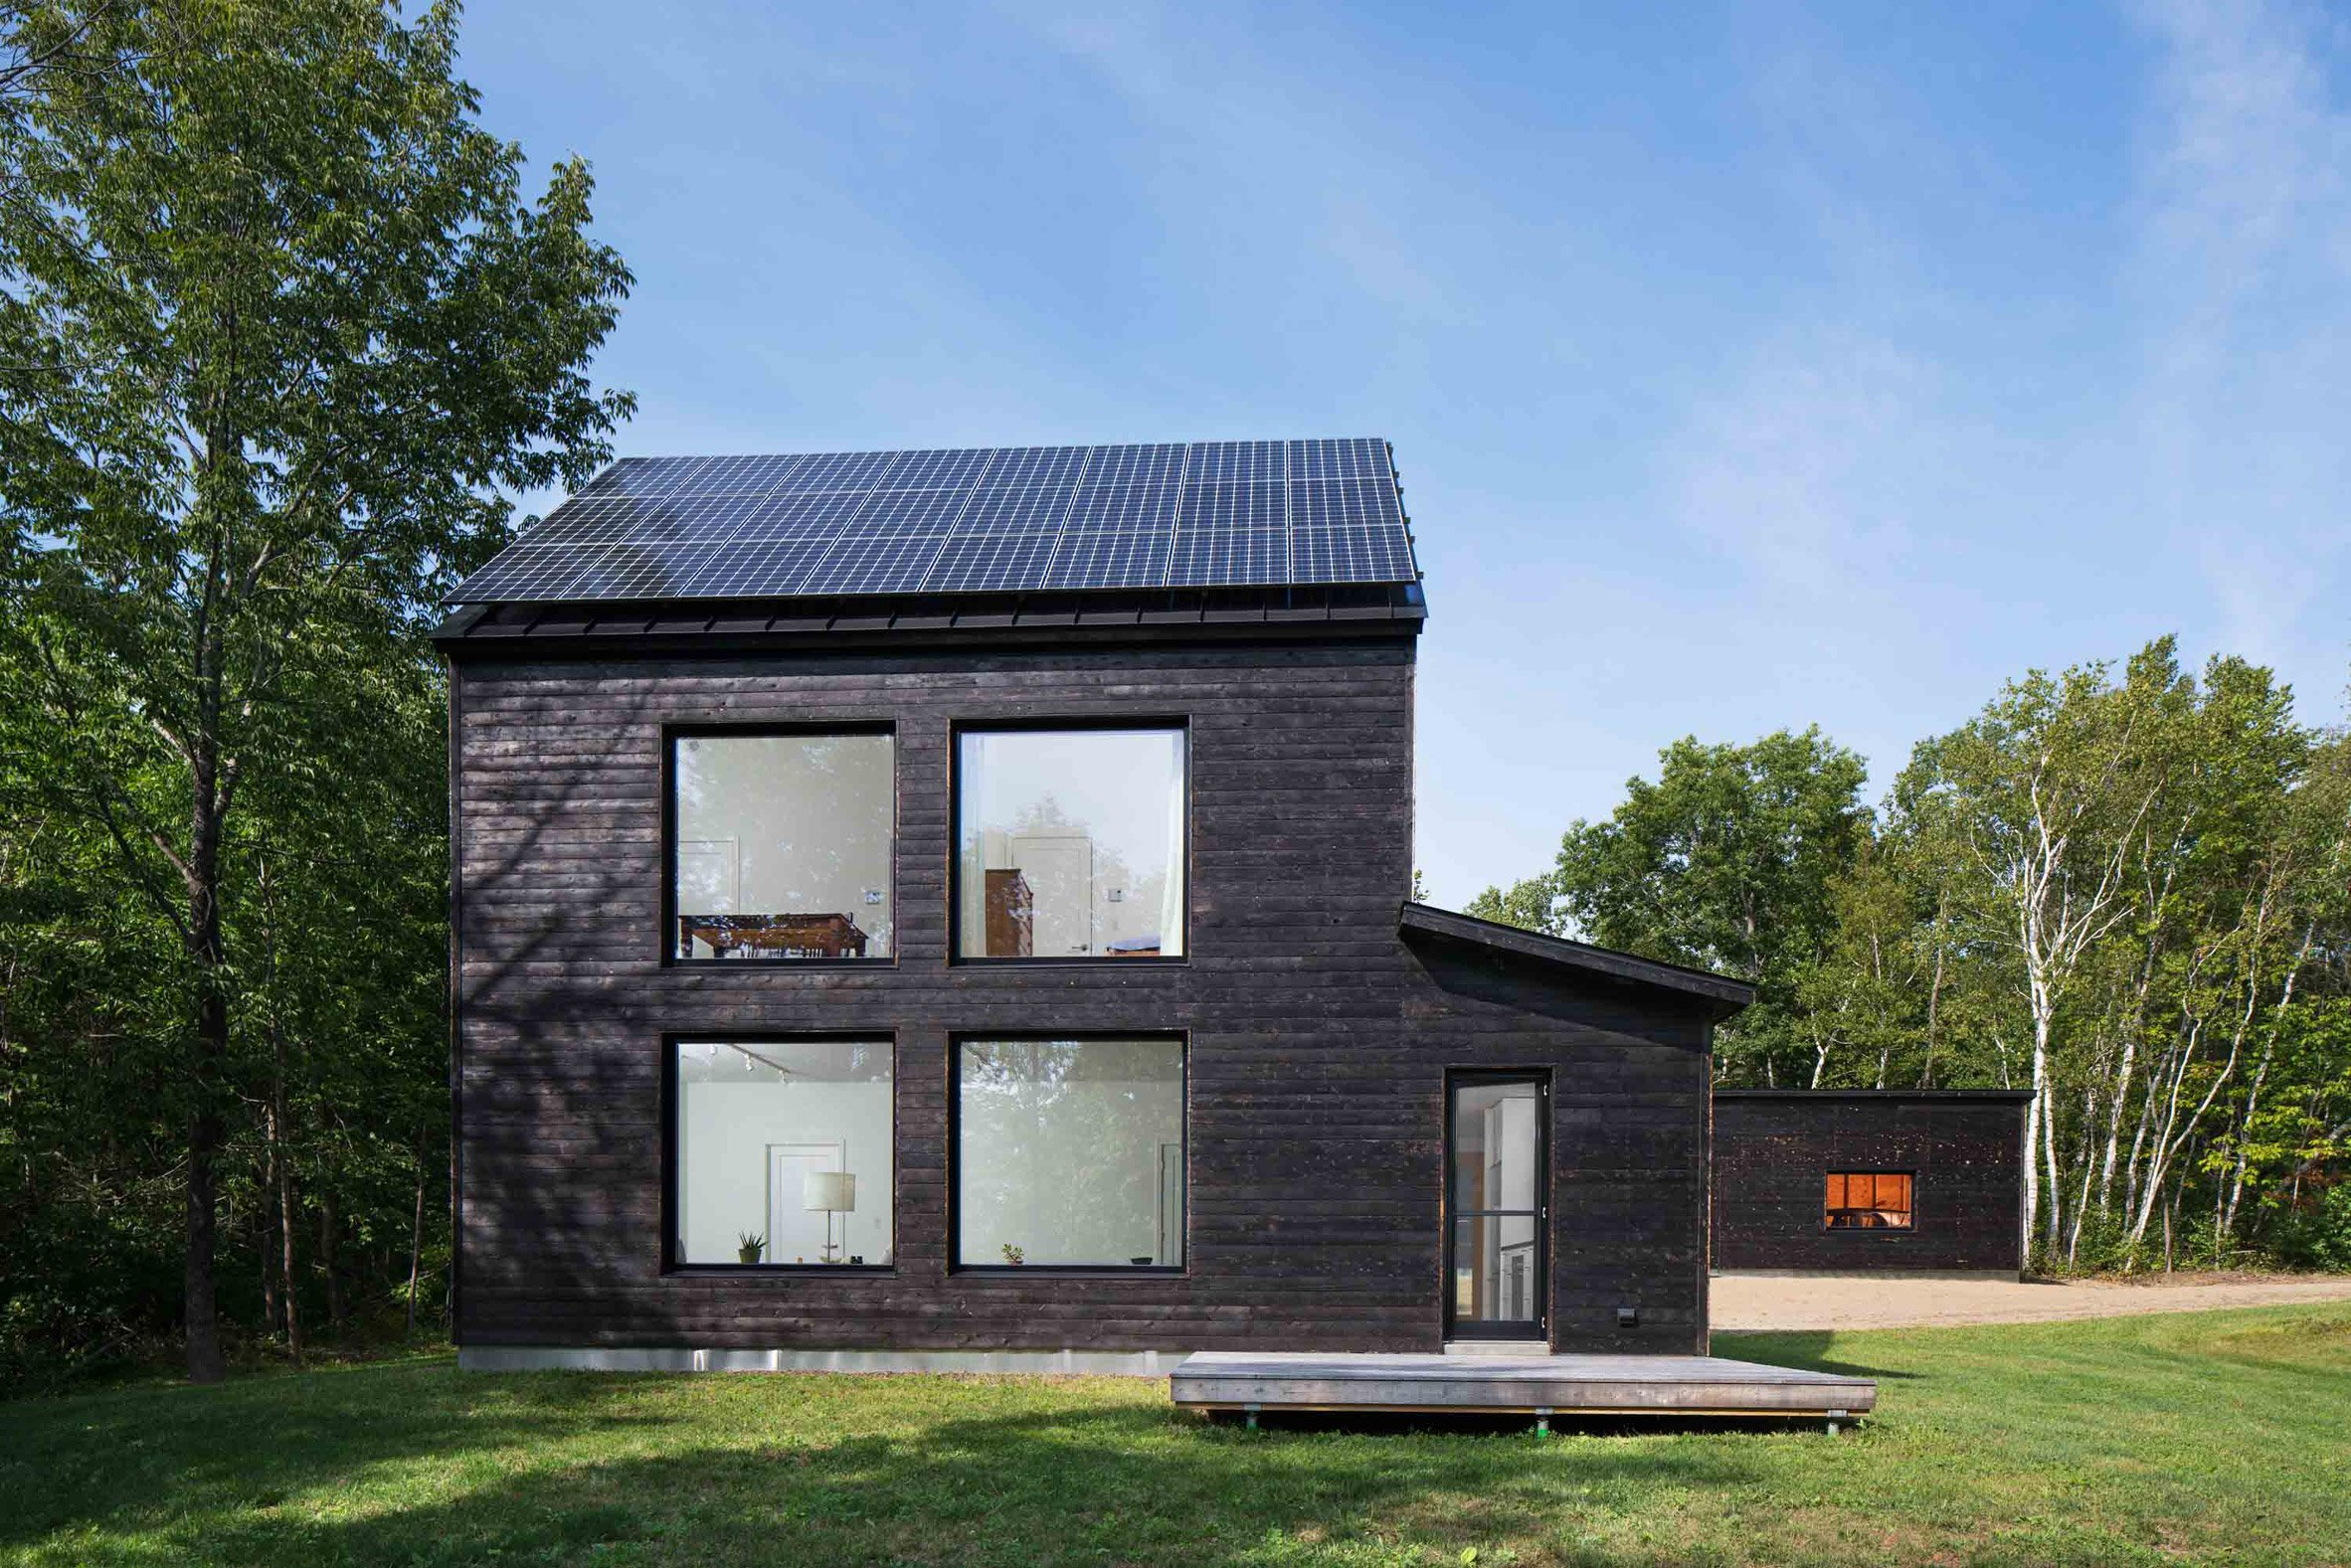 Prefab homes from go logic offer rural modernism for Modern new england home plans